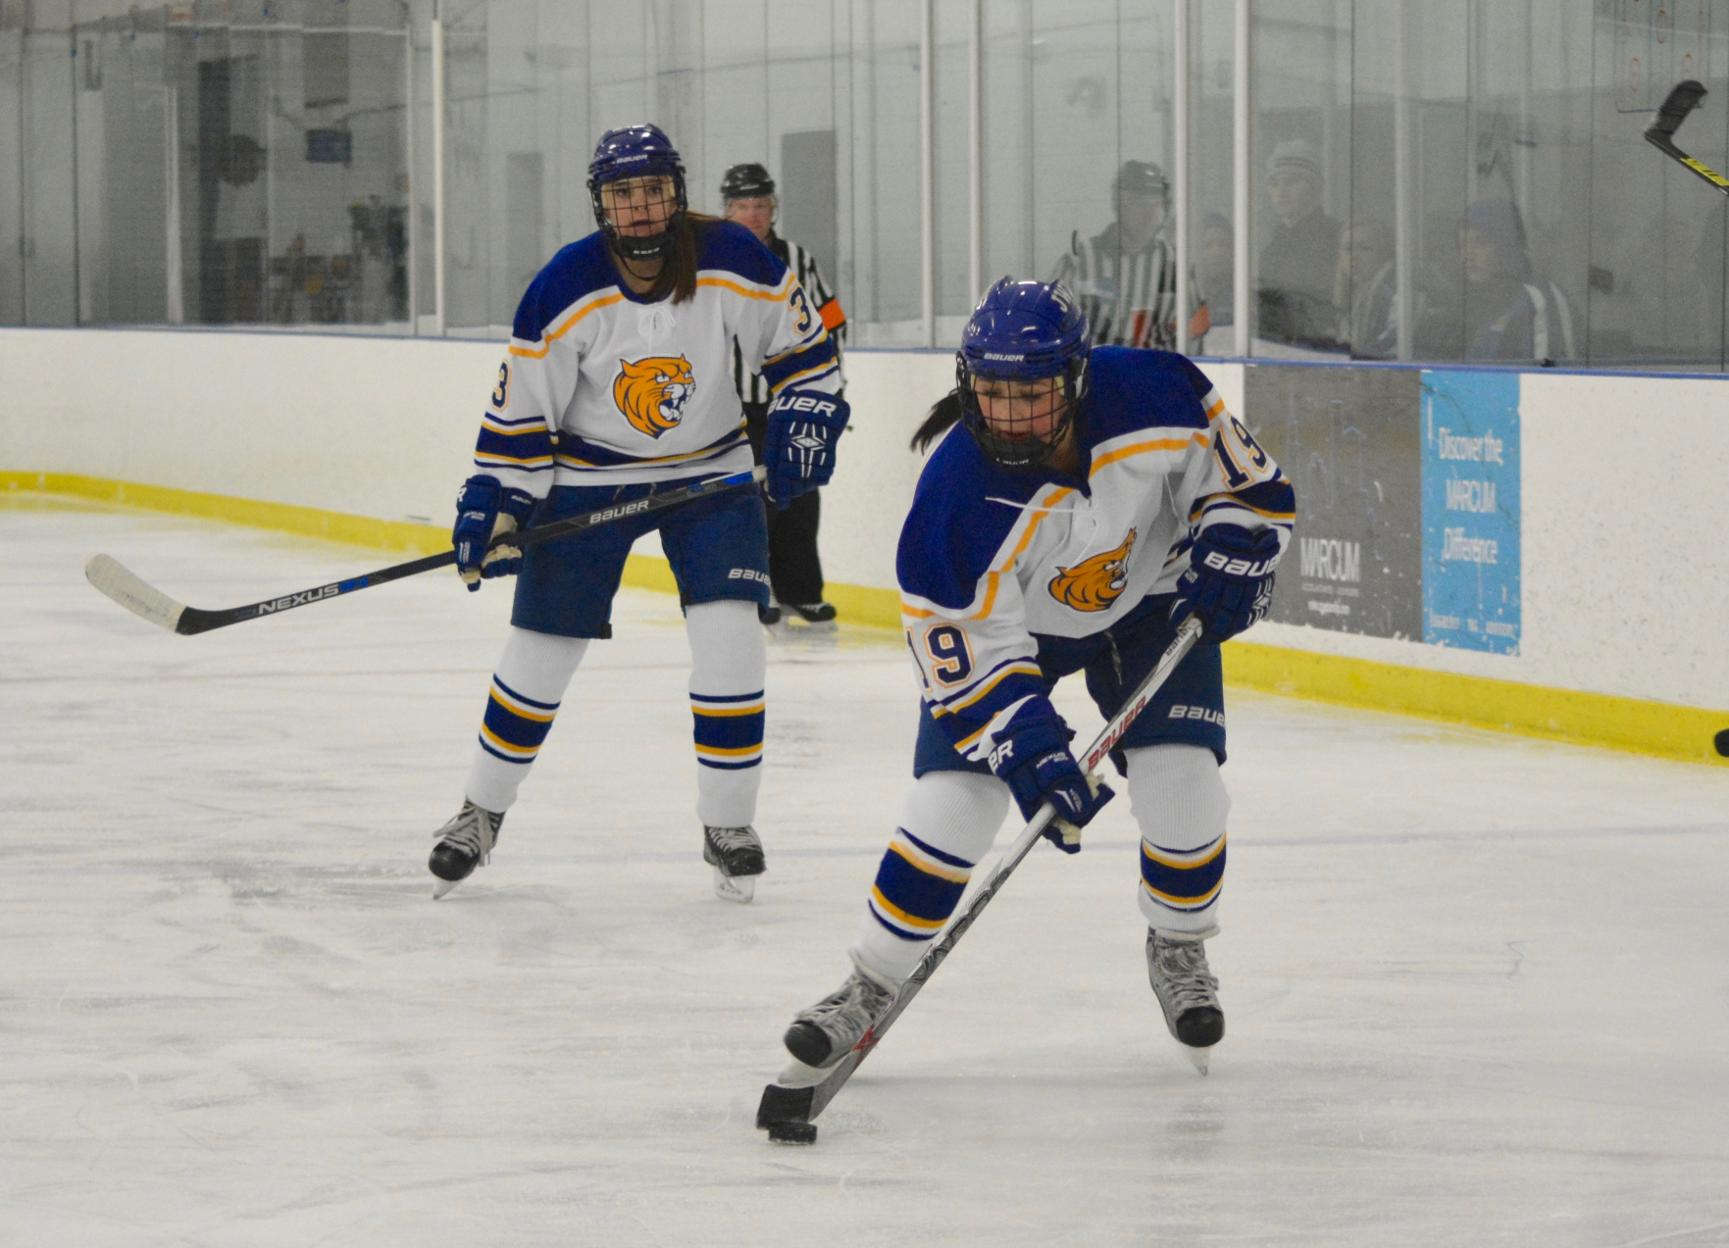 JWU Finishes Regular Season With 5-0 Loss To Morrisville